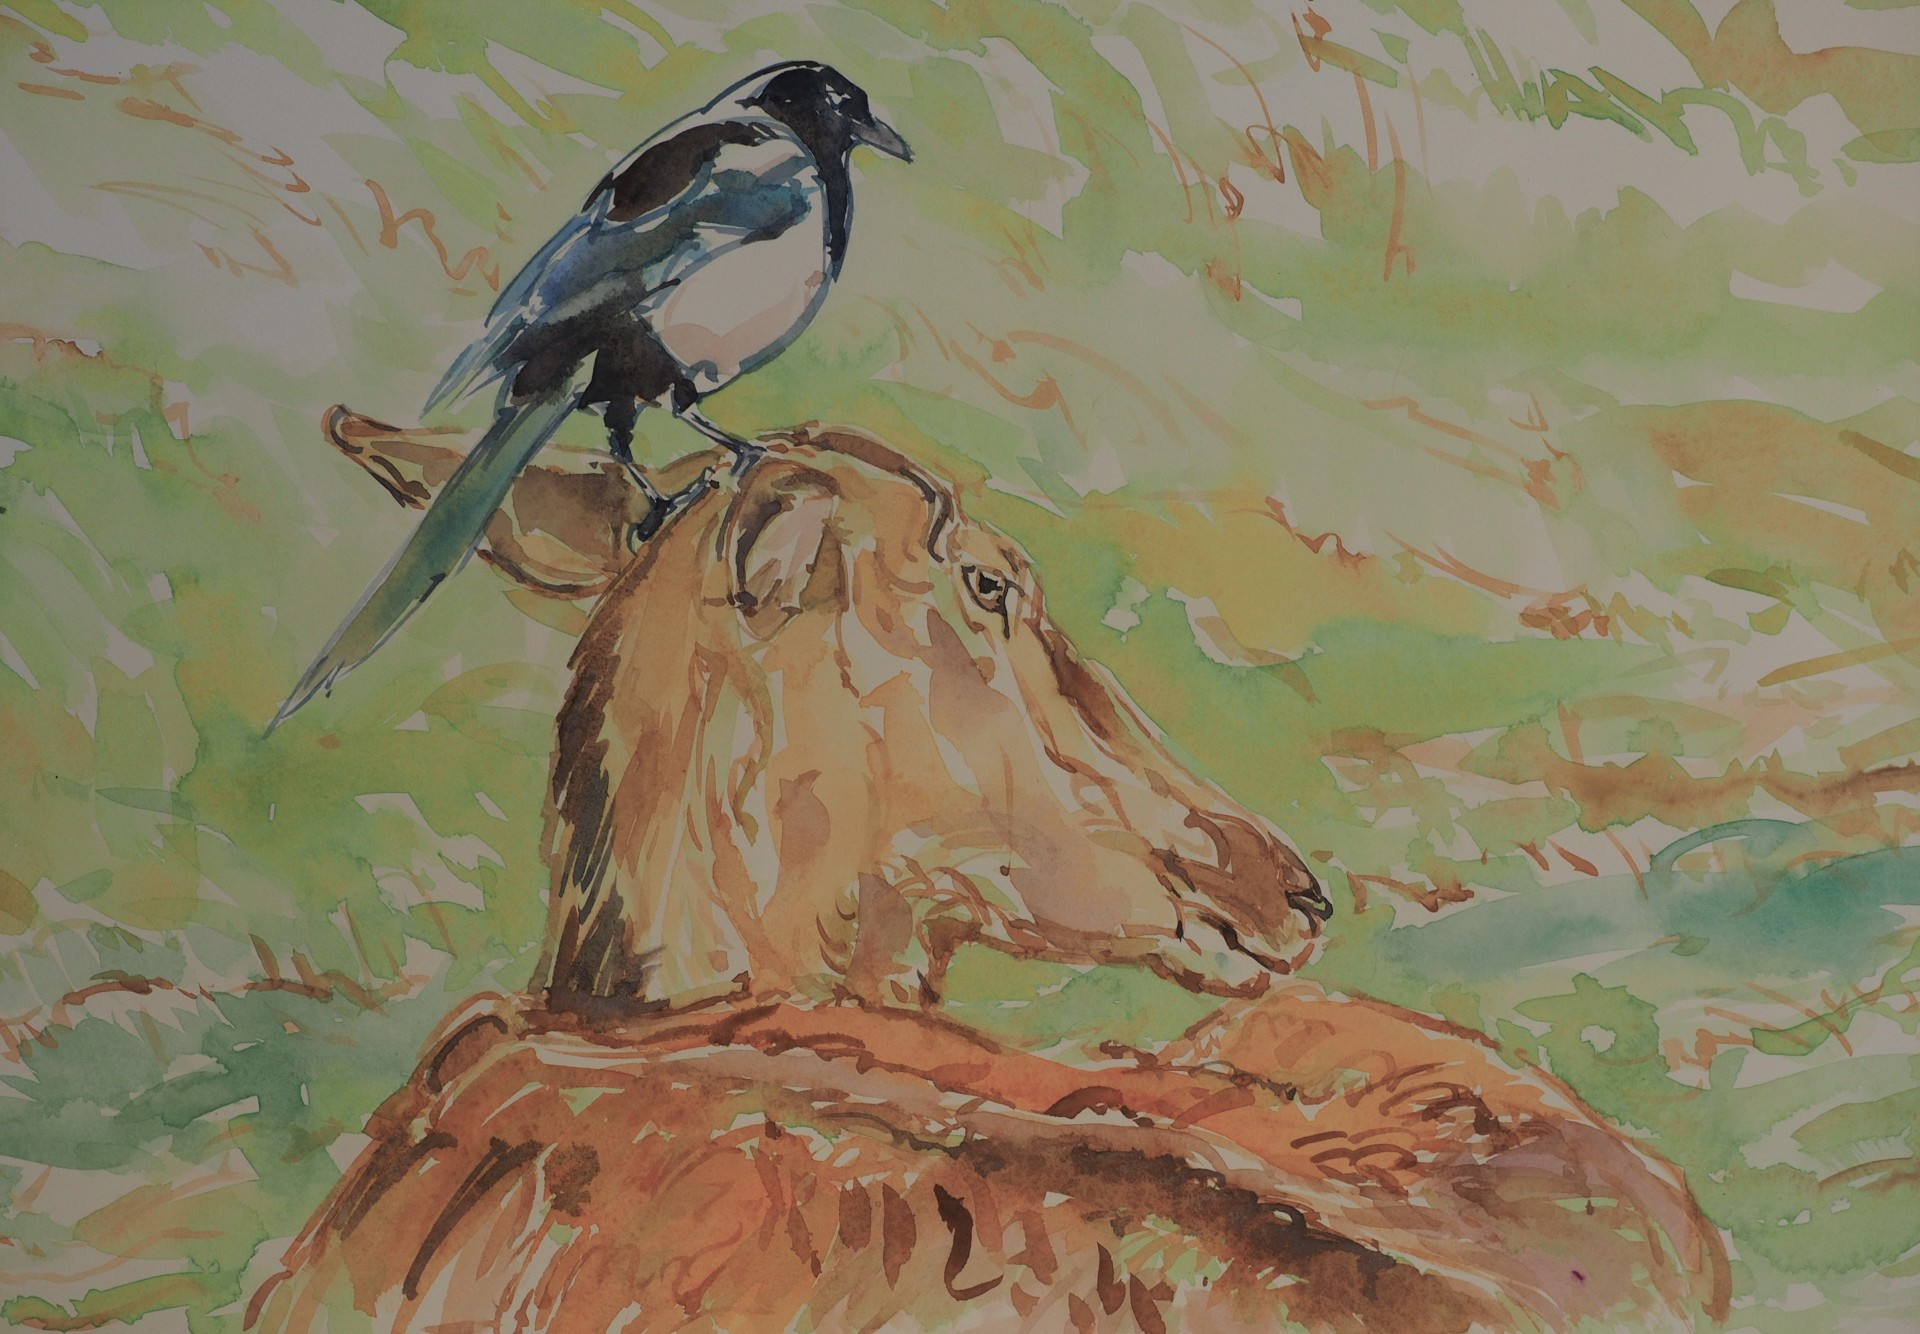 Magpie picking Ticks from a Red Deer Hind, Galloway, Scotland